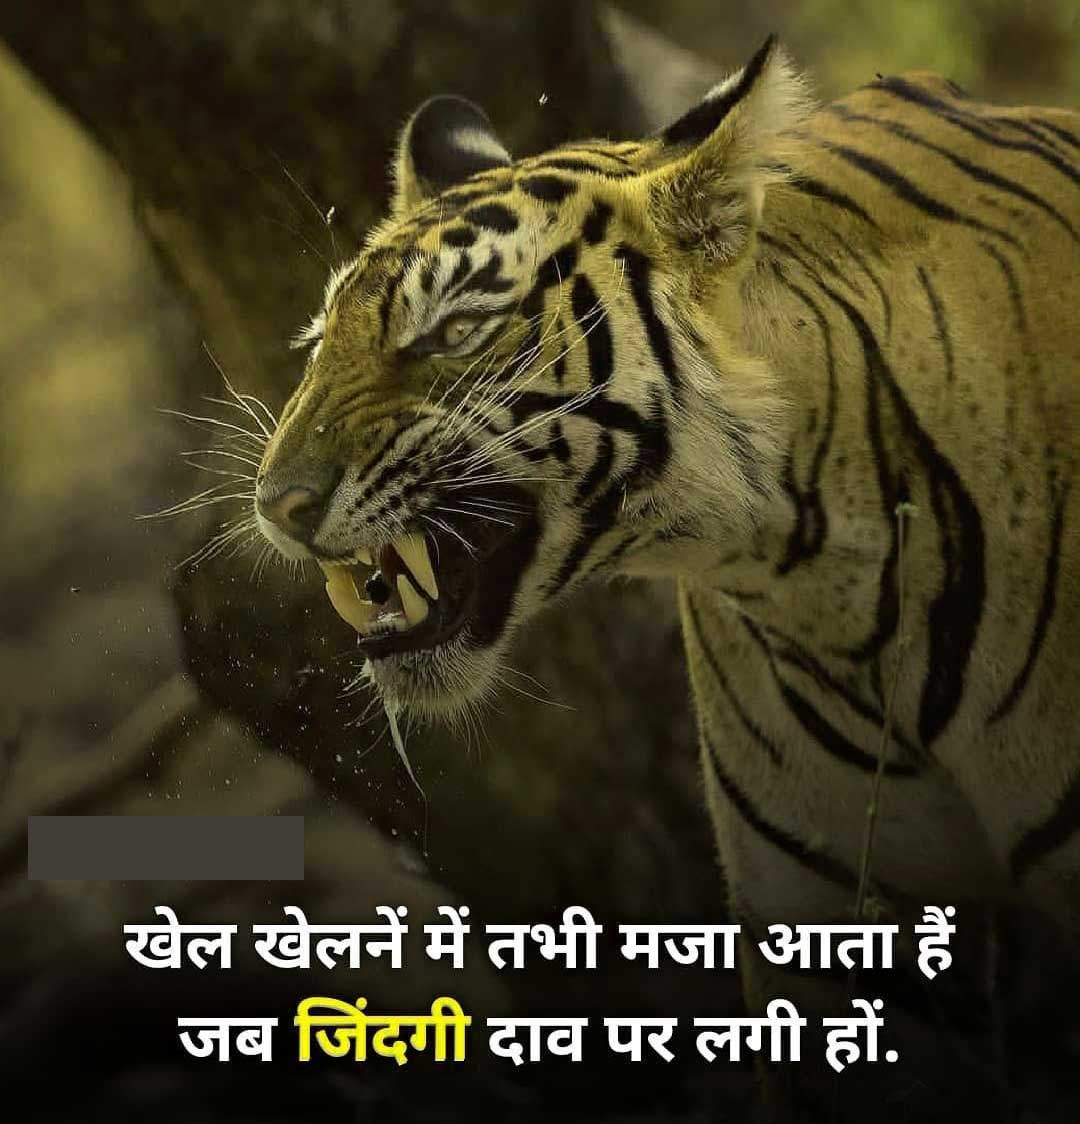 Hindi Attitude Images For Boys Pics Pictures